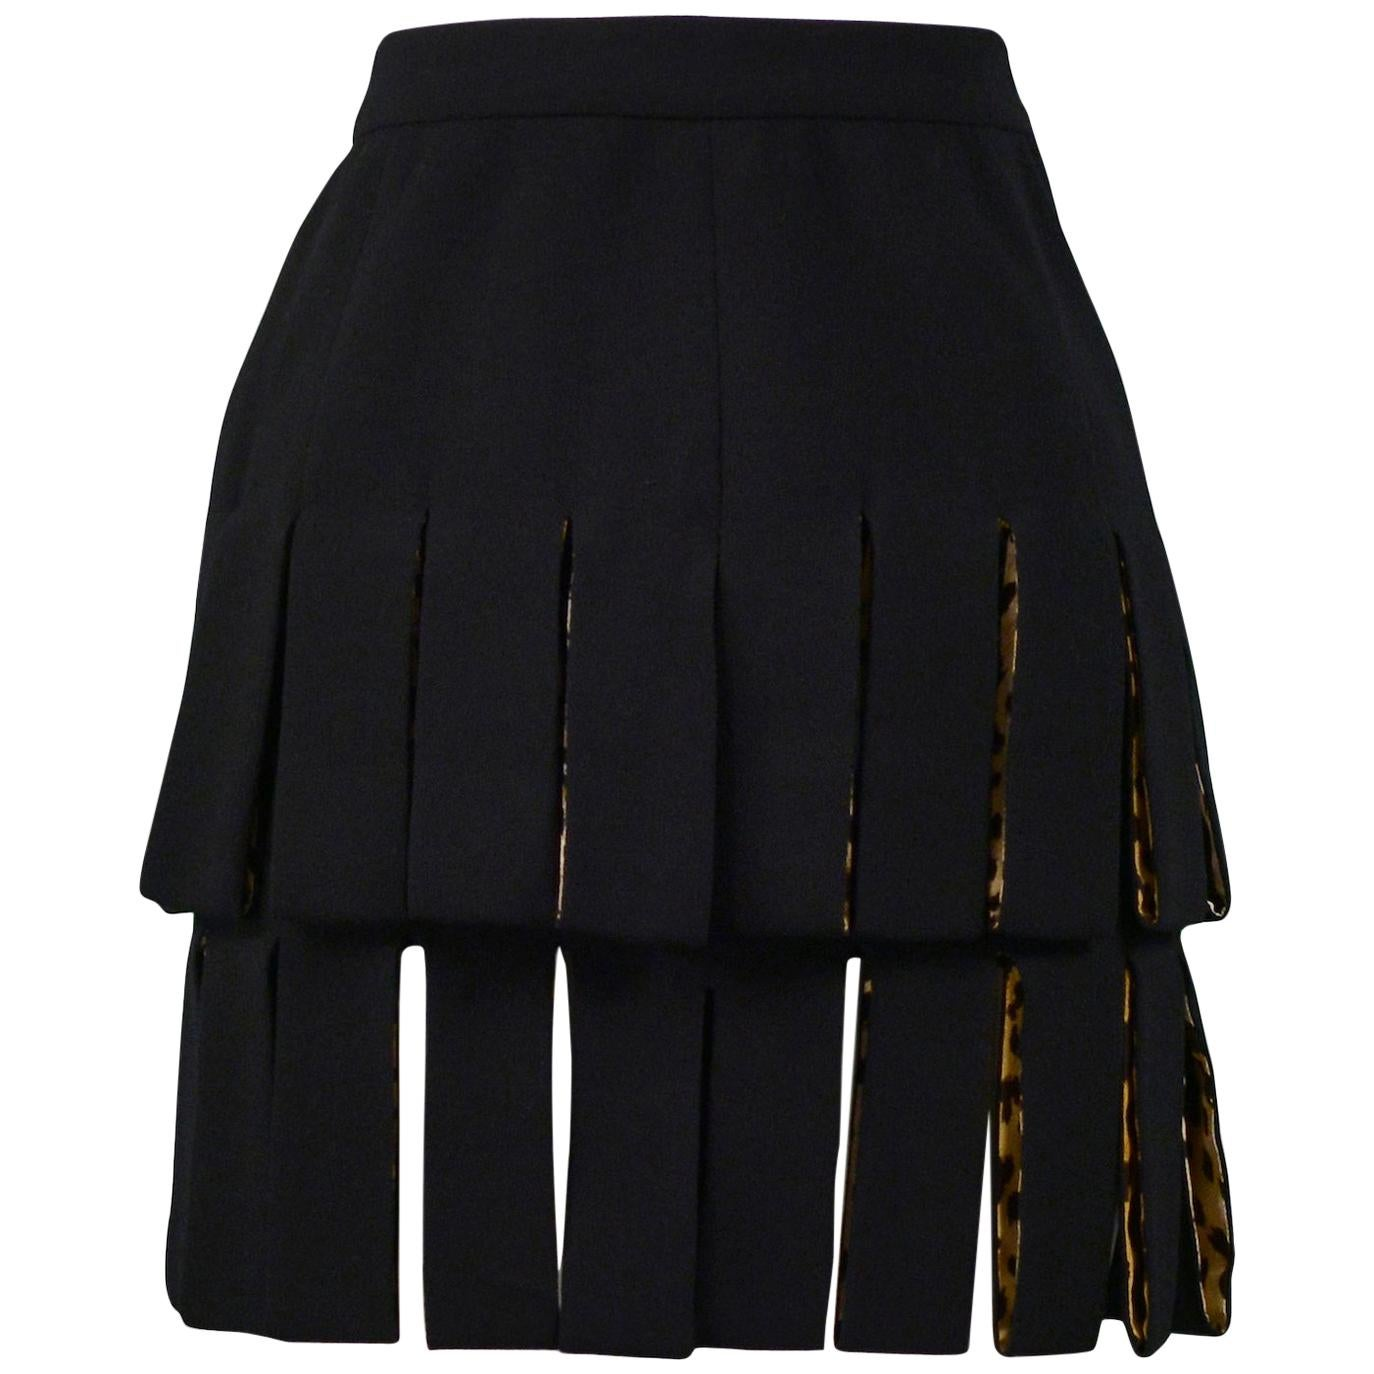 Vintage Versace Black Carwash Skirt with Leopard Lining